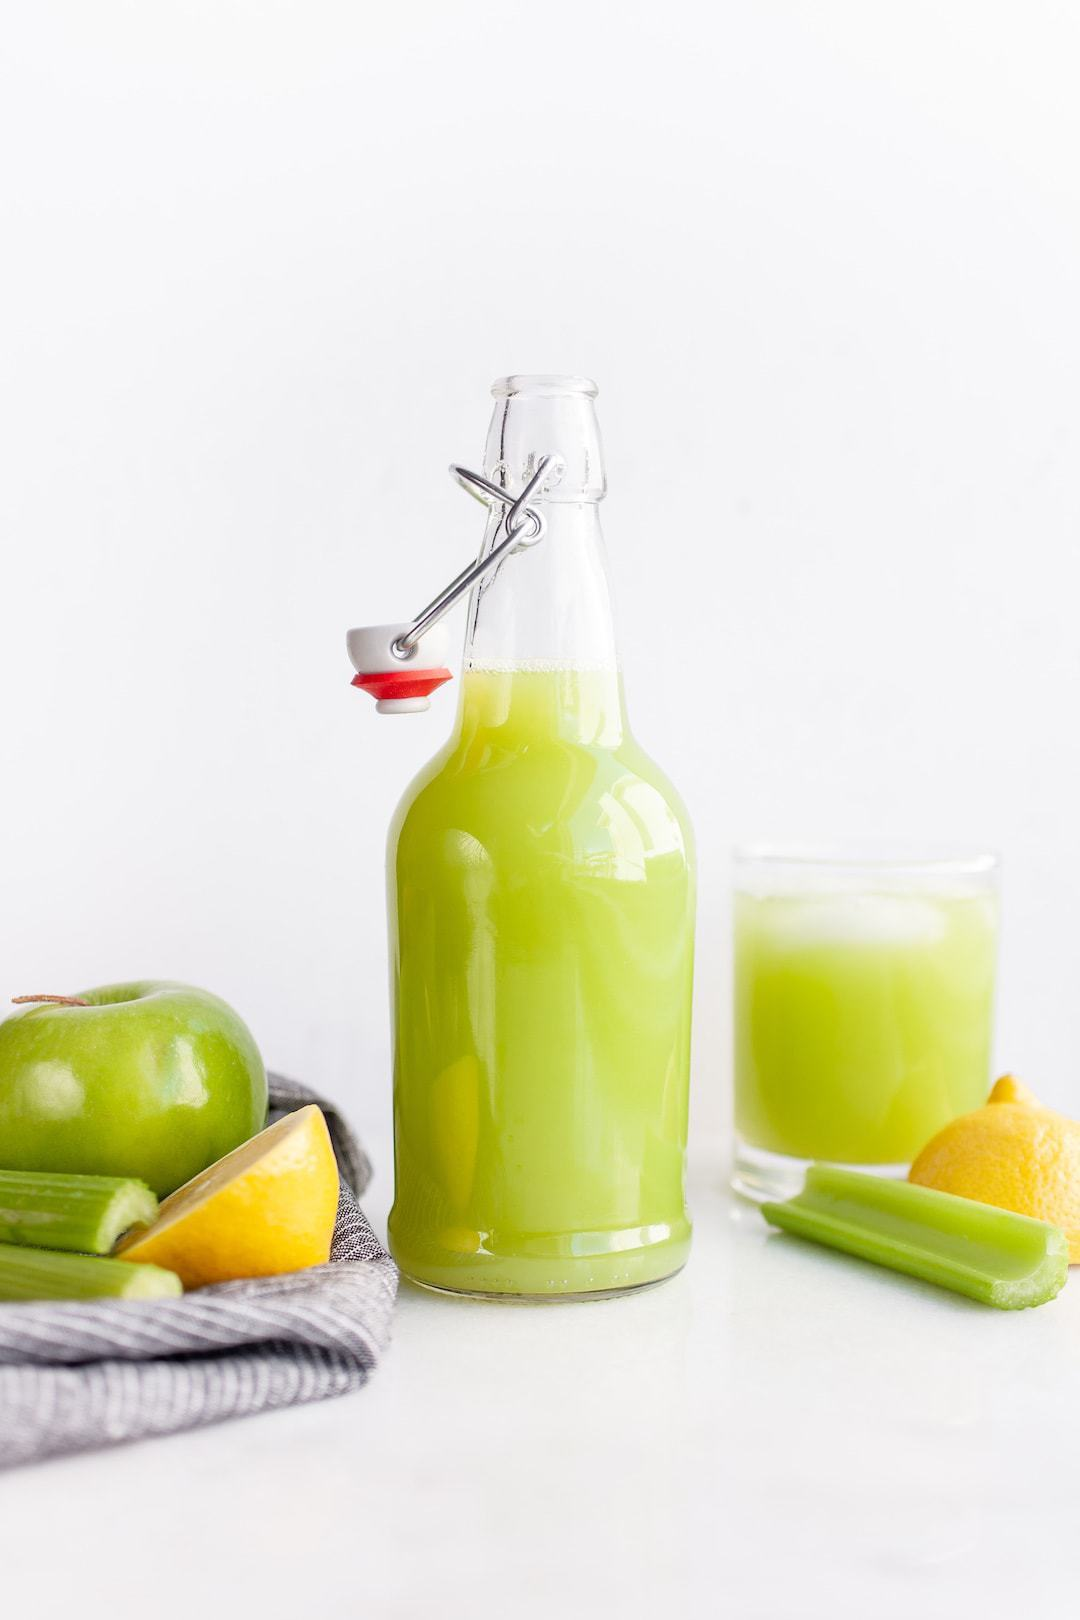 Jar of green celery juice with apples and celery on the side